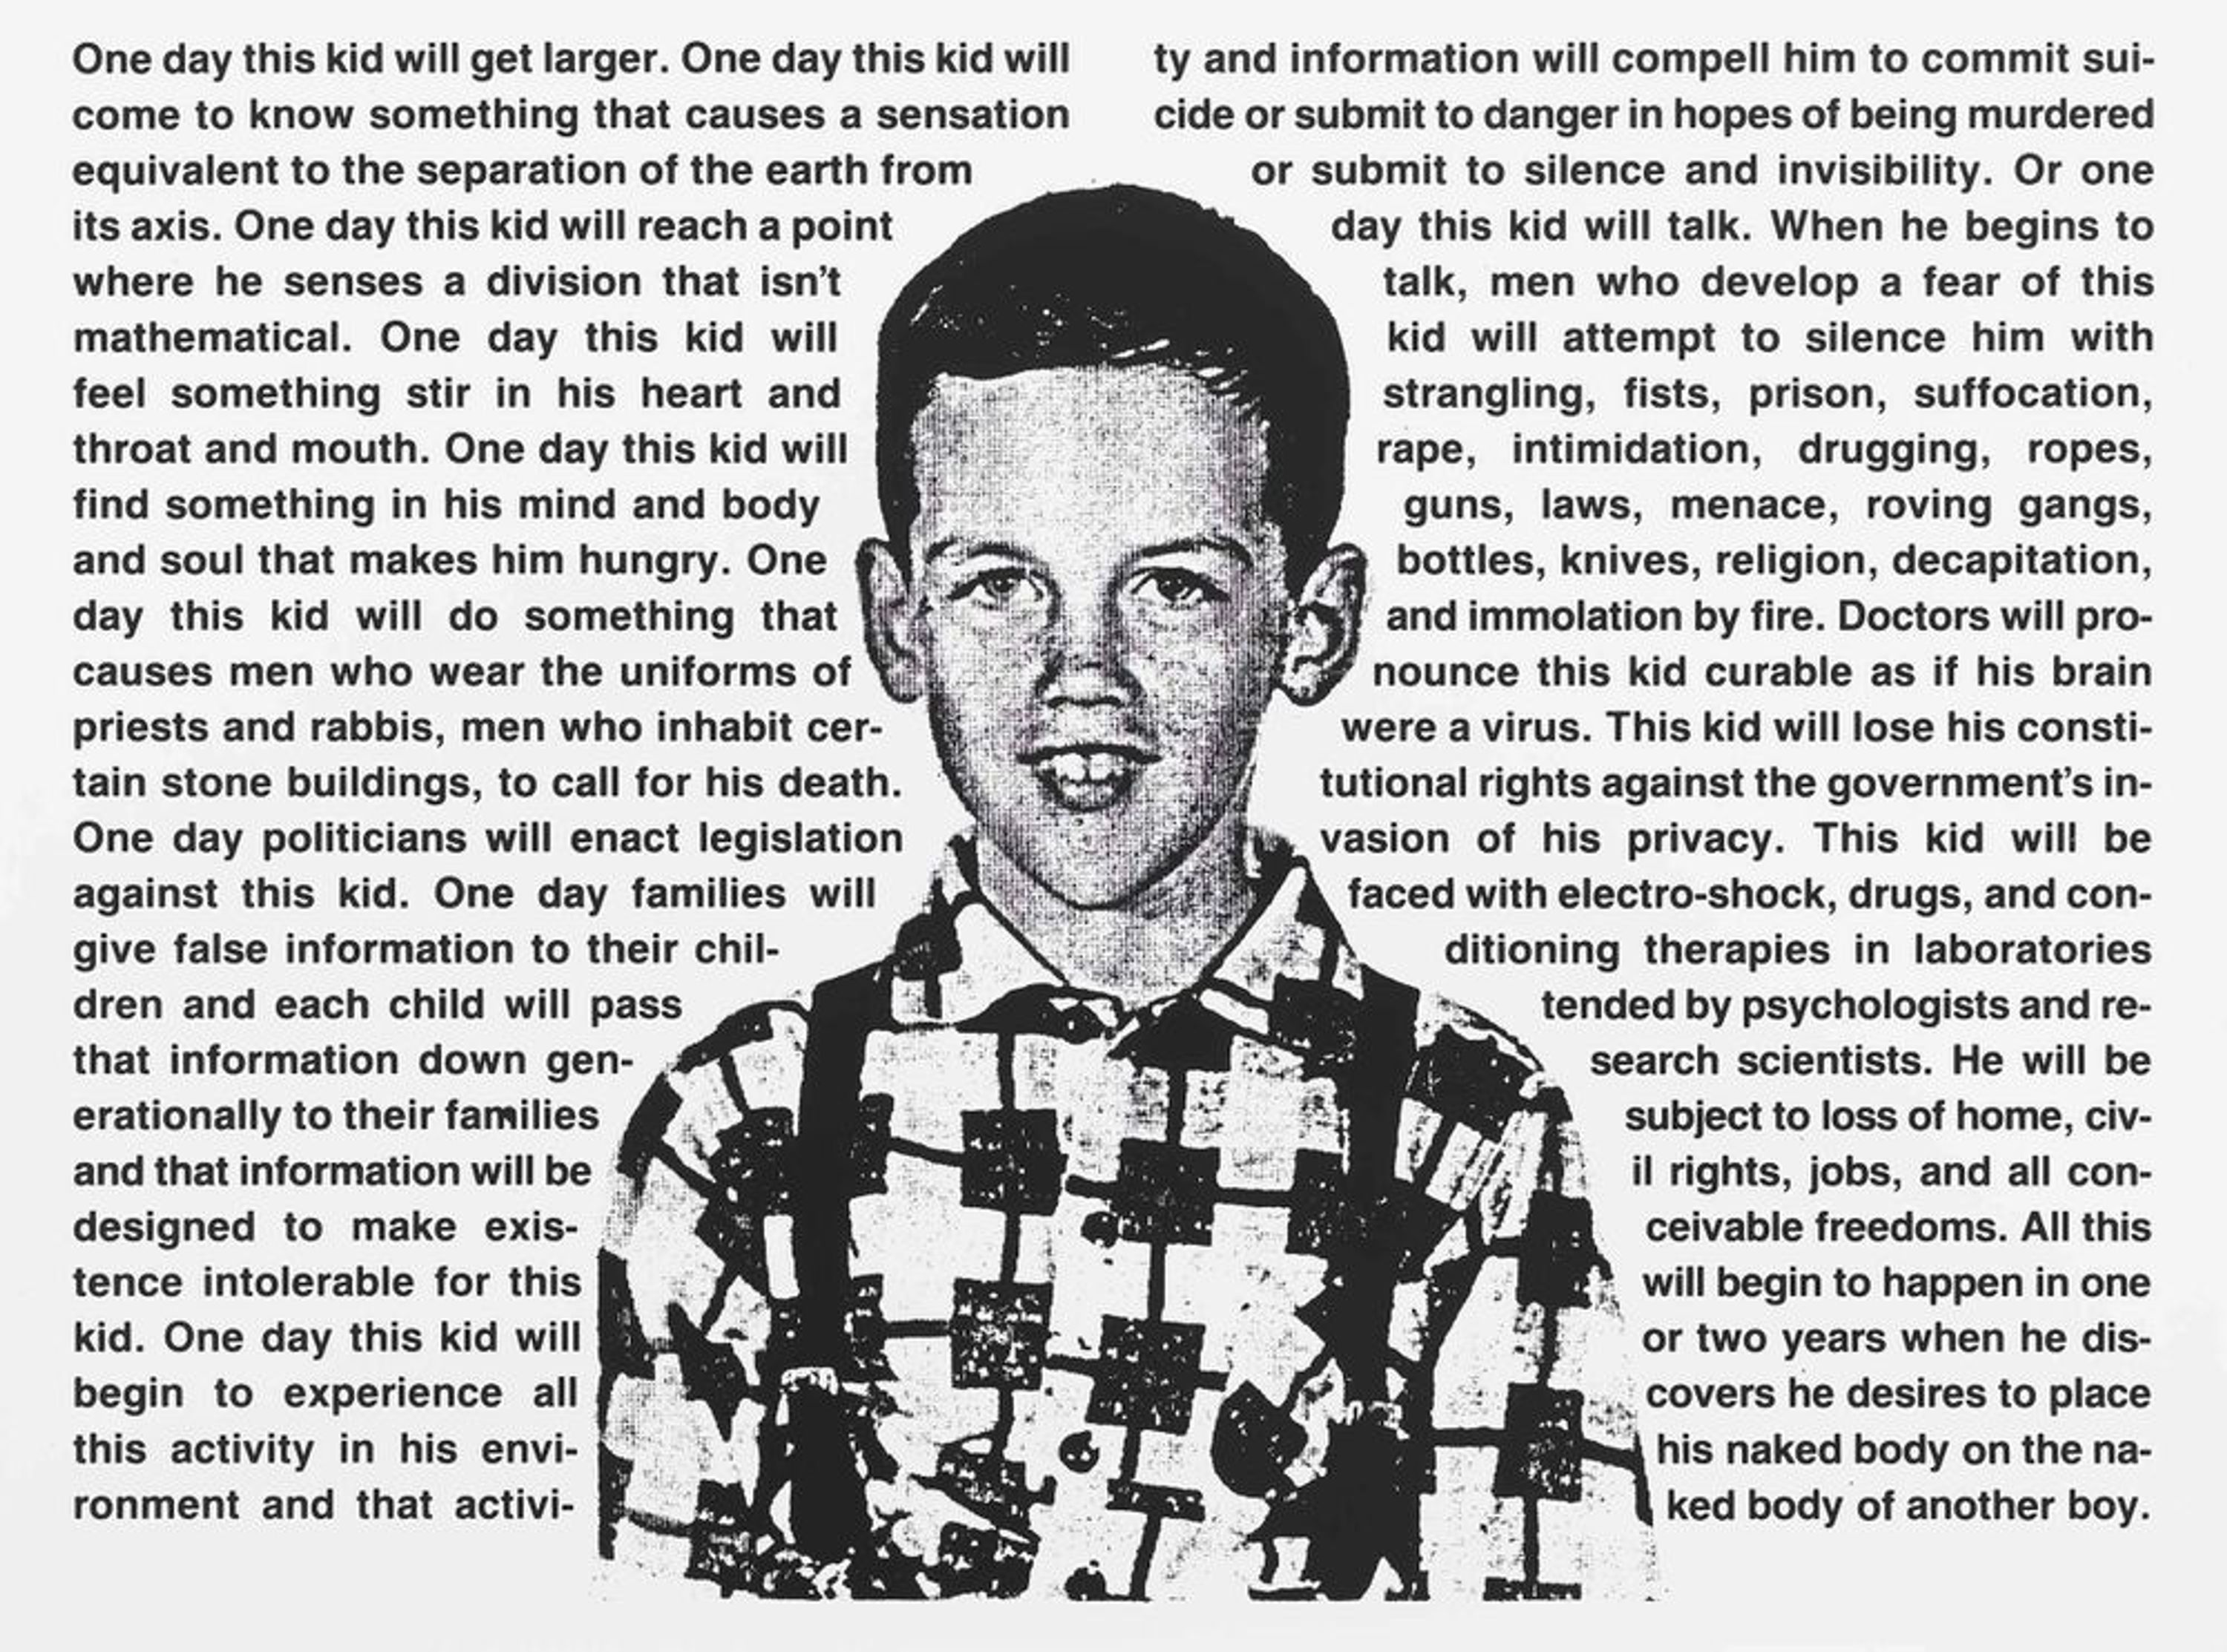 Image of a young boy surrounded by biographical text.